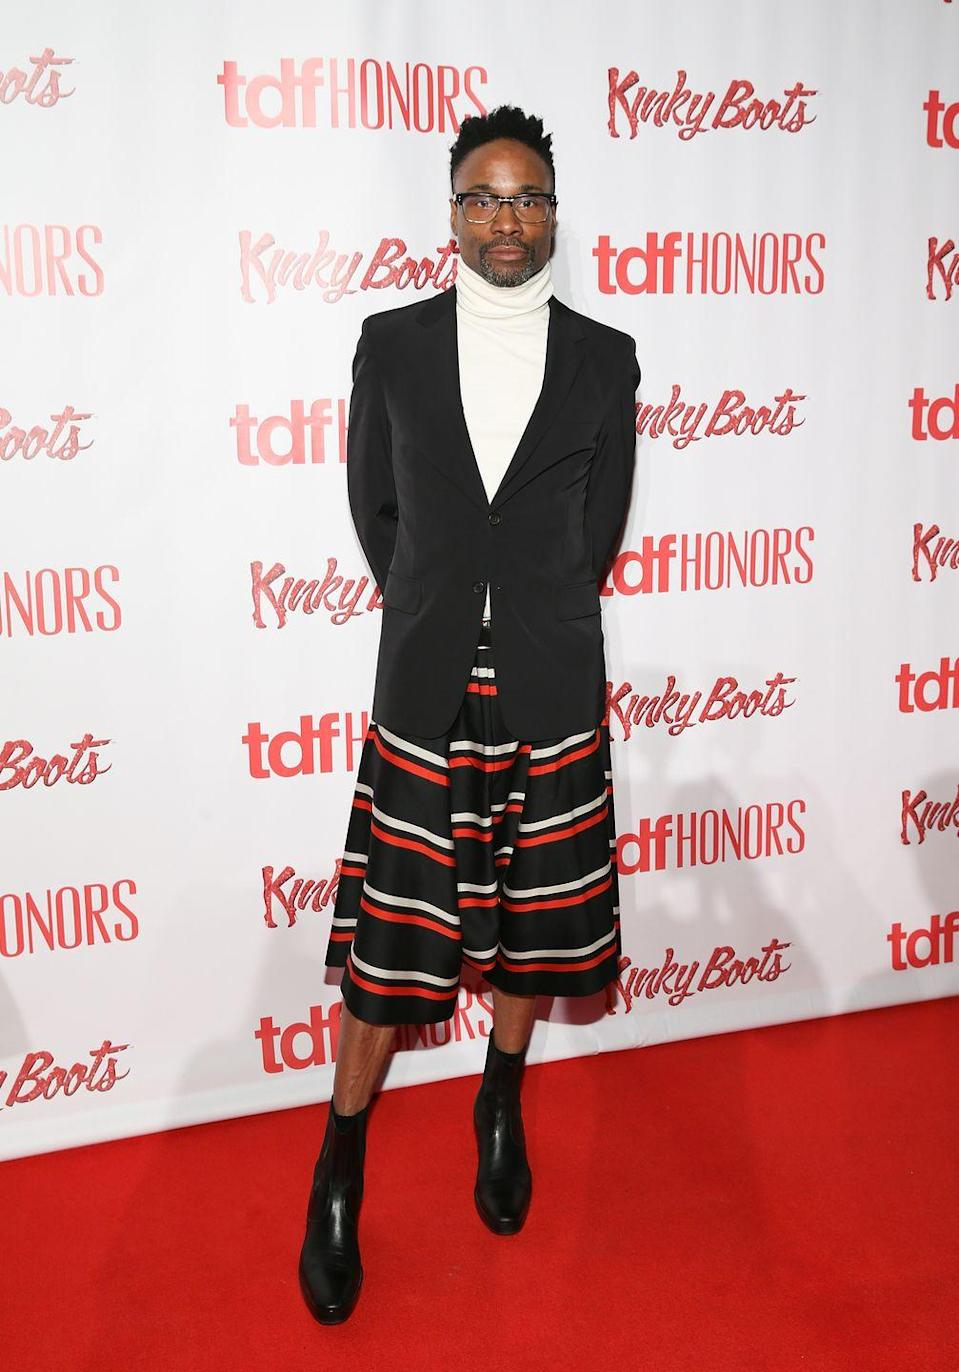 <p>Porter at the TDF Honors Broadway's <em>Kinky Boots</em> event in a striped shirt, black blazer, and white turtleneck. </p>